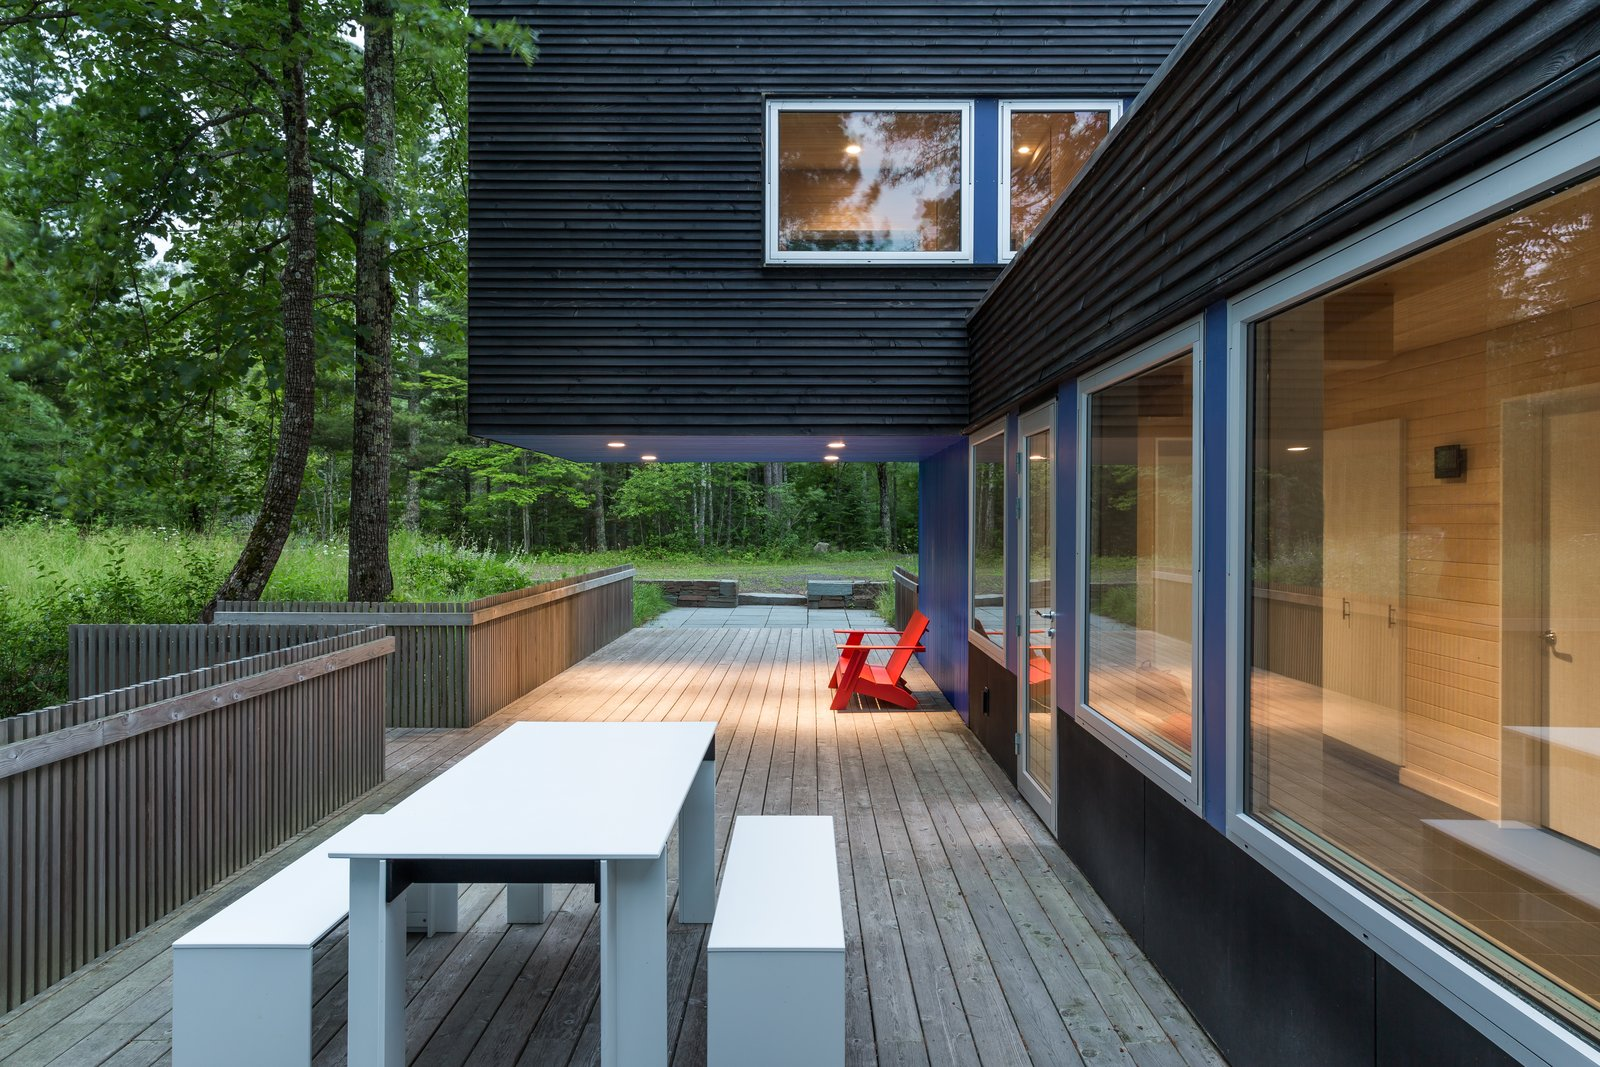 Outdoor, Shrubs, Grass, Large Patio, Porch, Deck, Trees, Wood Fences, Wall, and Vertical Fences, Wall The south-facing deck leads out to the sauna.  Best Photos from Two Rectangular Volumes Unite to Form a Colorful Lakeside Cabin